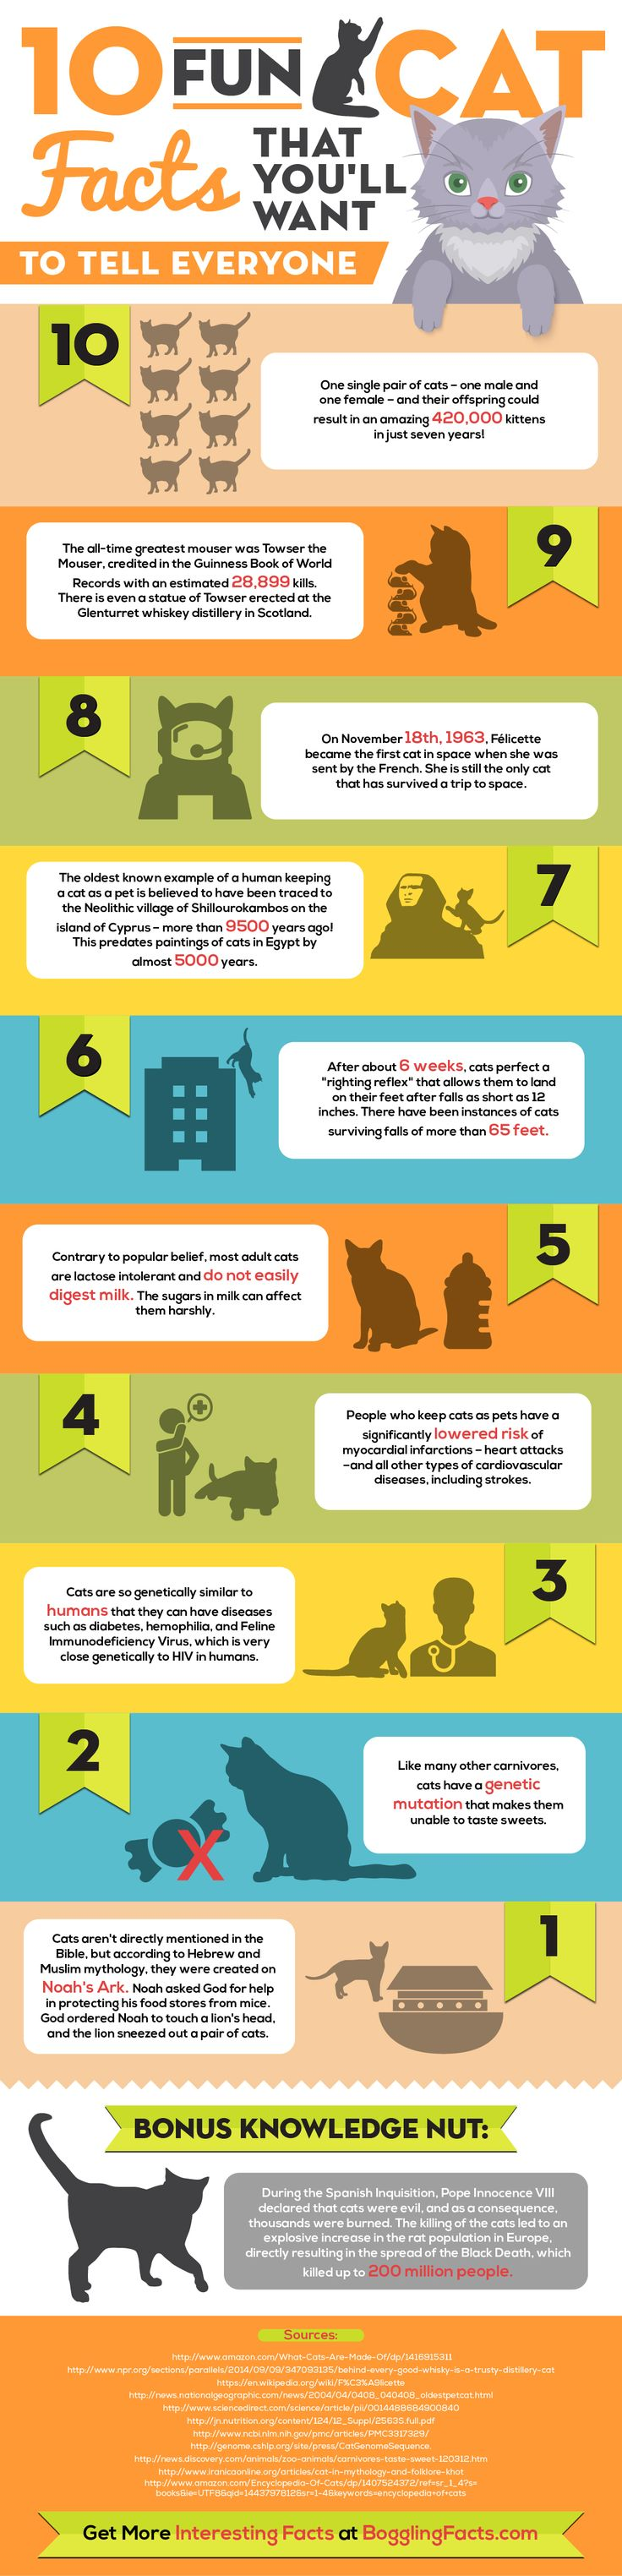 10 Fun Cat Facts That You'll Want to Tell Everyone #infographic